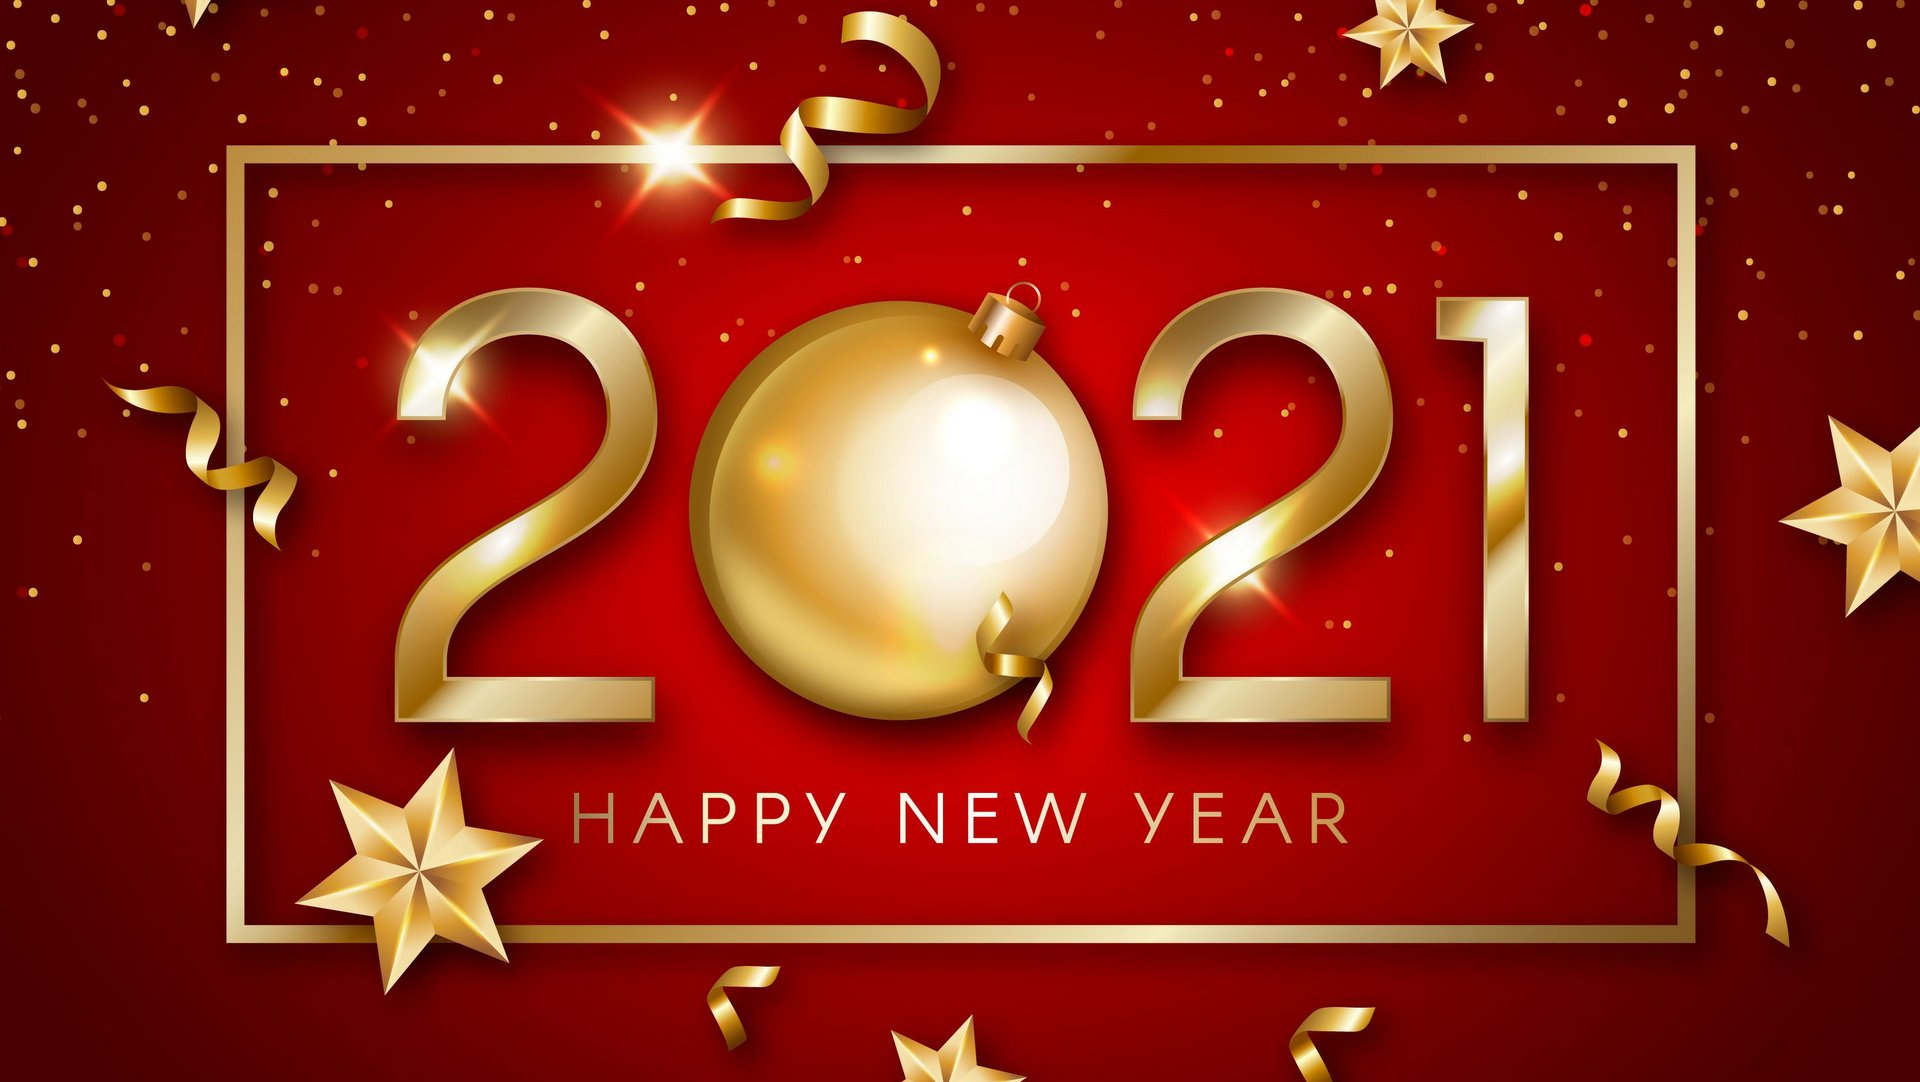 2021 Happy New Year Wallpaper 1920×1080